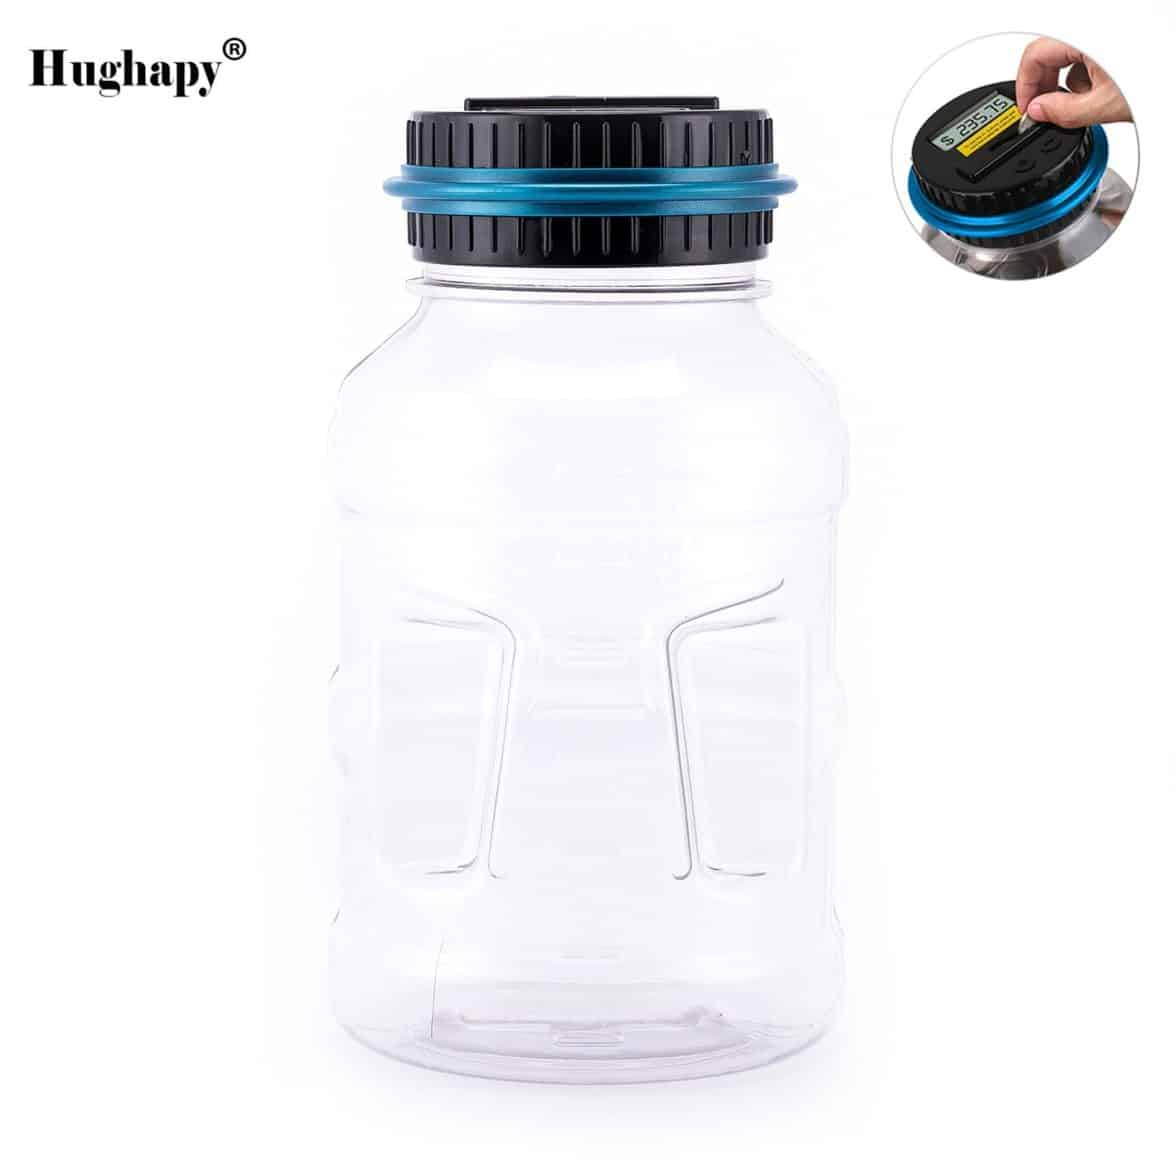 Hughapy Digital Coin Saving Money Box Jar Automatic Clear Electronic Counting Piggy Bank